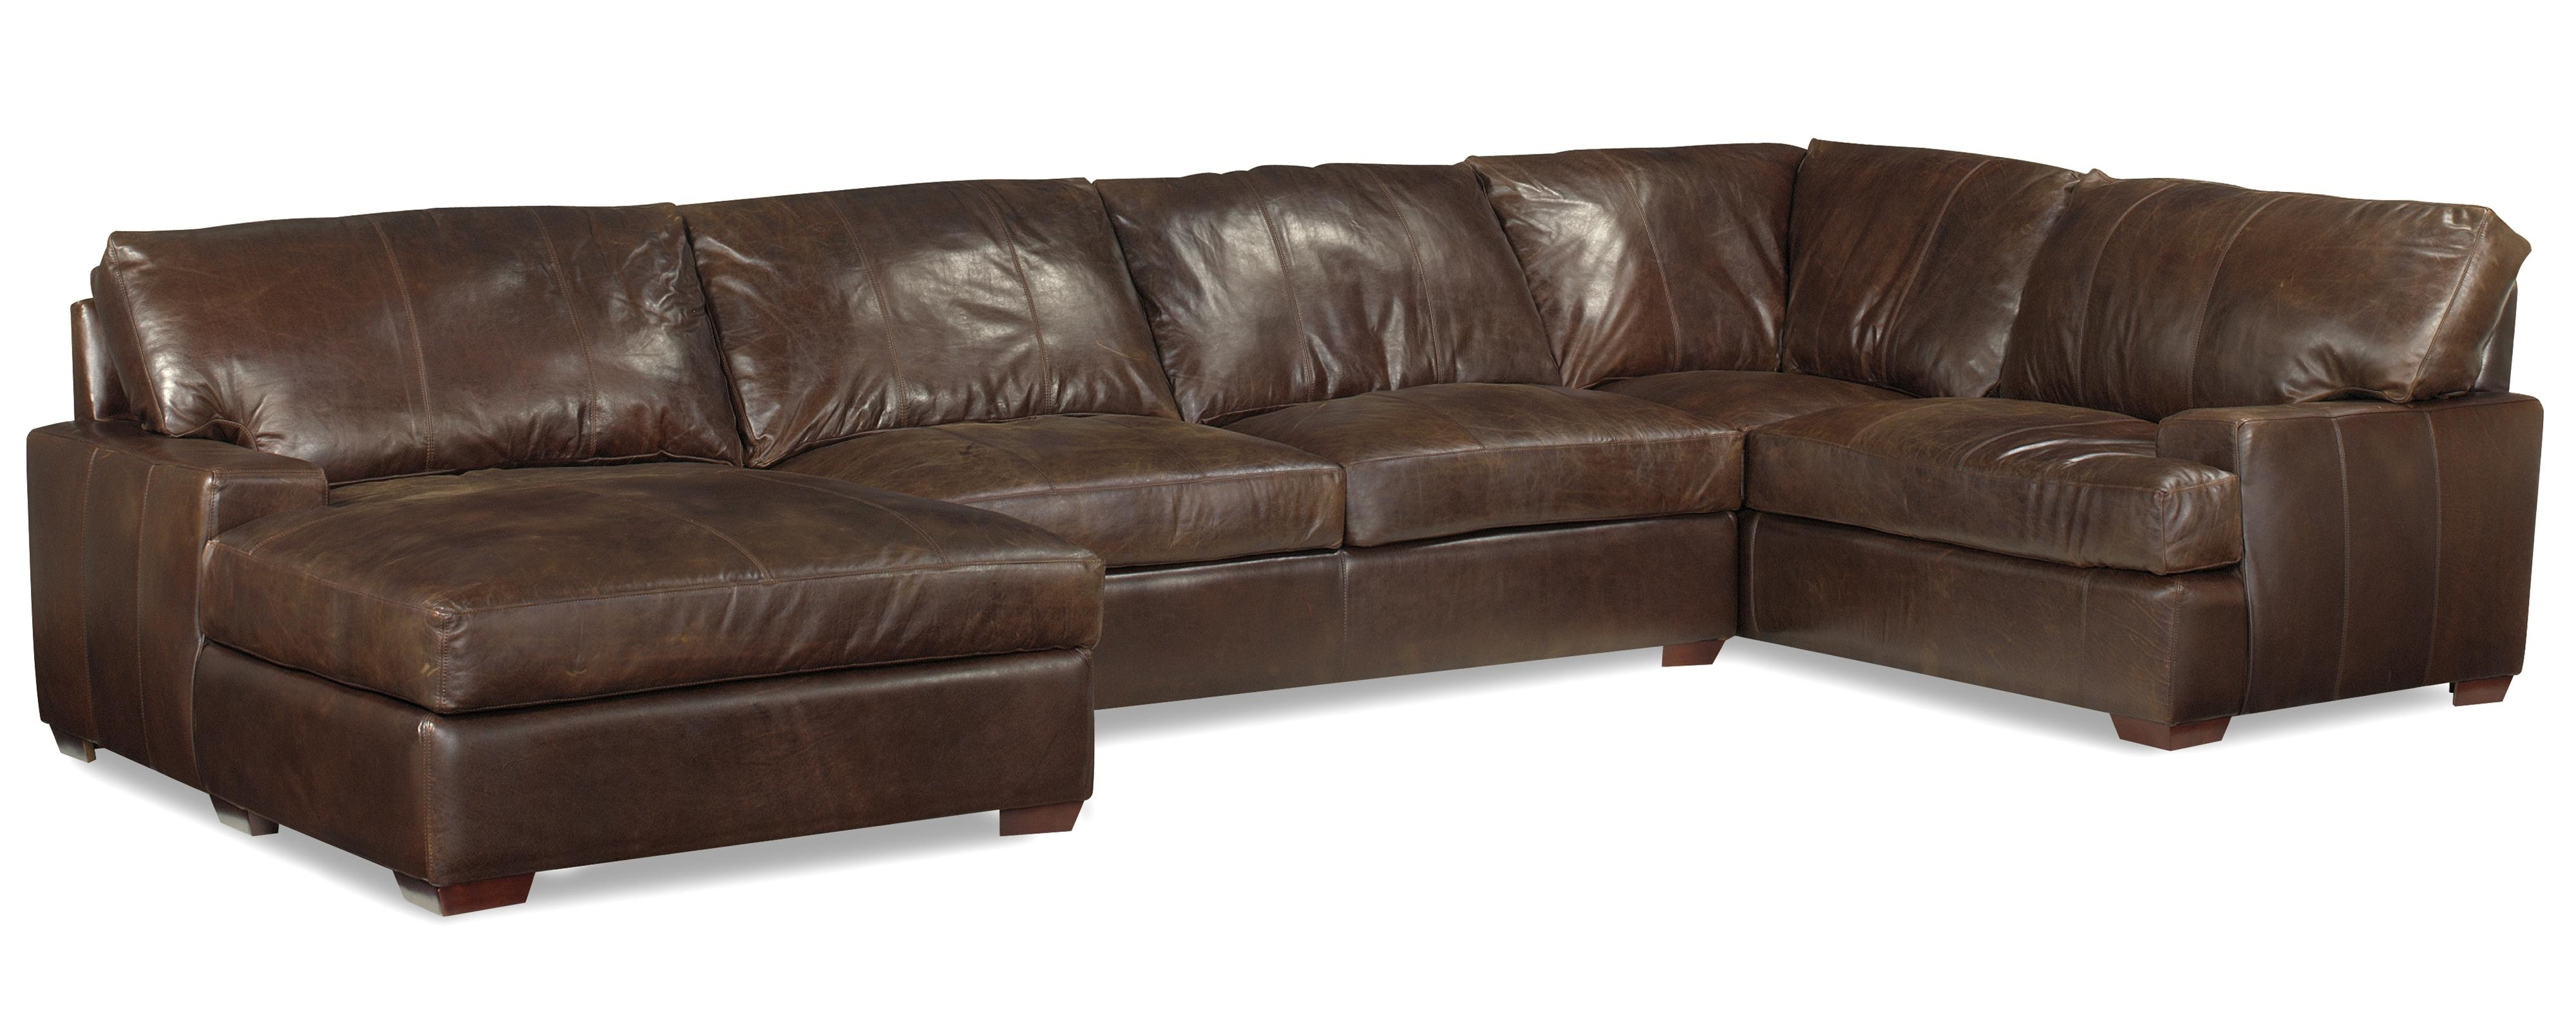 Latest Usa Premium Leather 3635 Track Arm Sofa Chaise Sectional W/ Block Within Leather Sofa Chaises (View 13 of 15)